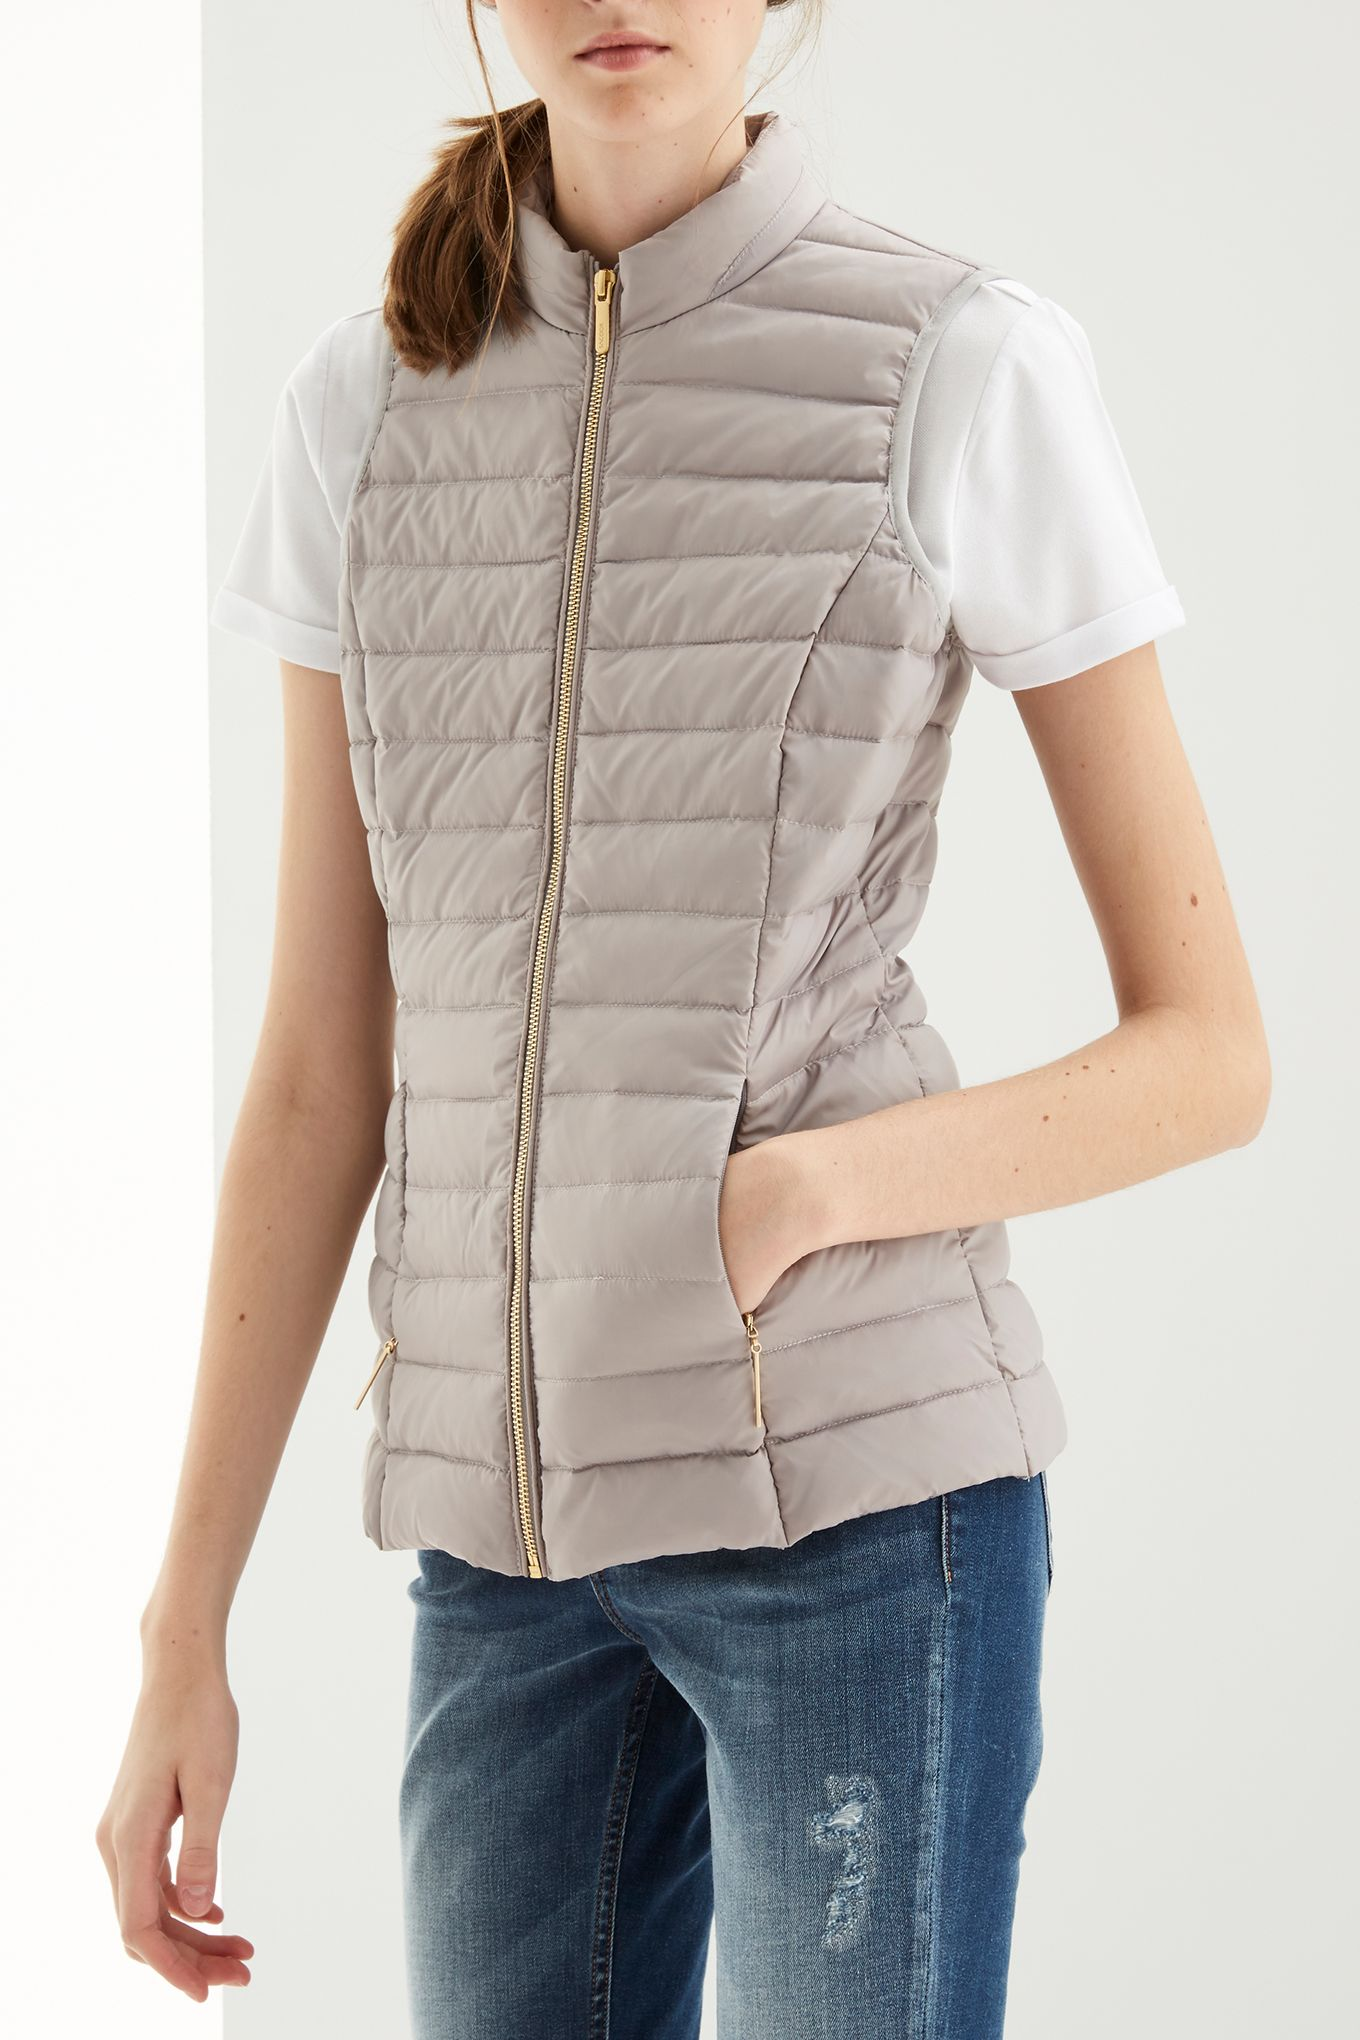 Womens grey casual vest